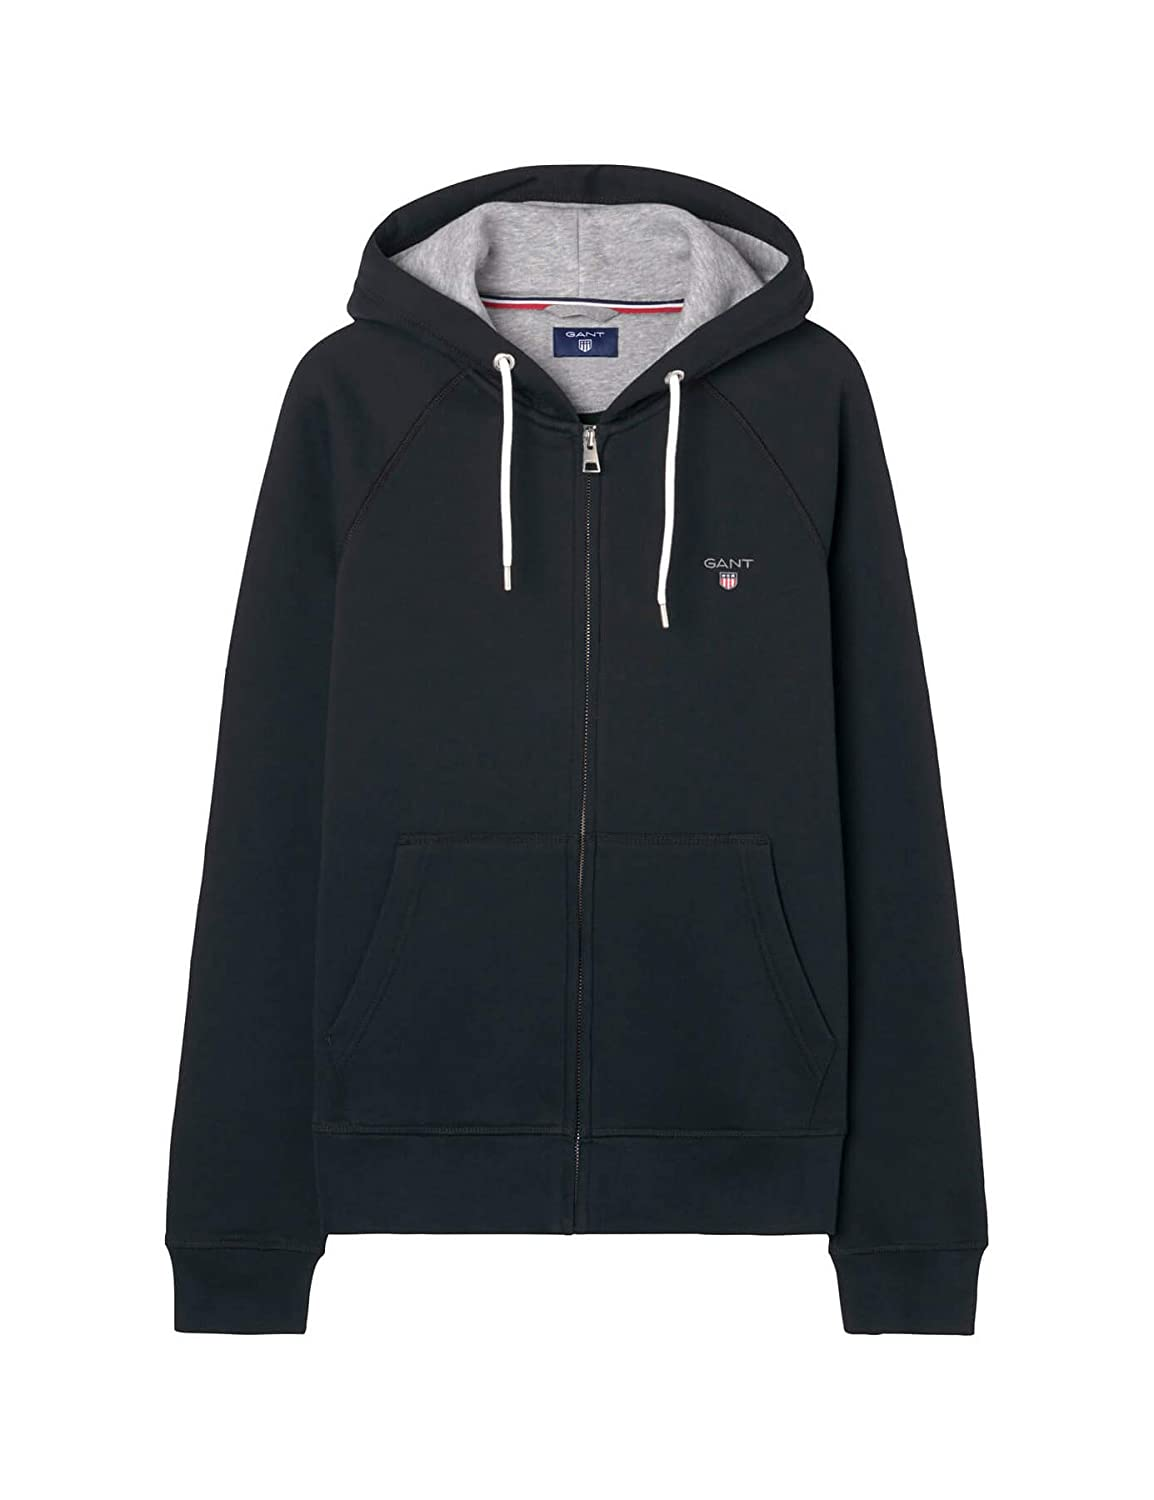 Original Hoodie Full Sweat À Zip Capuche Gant Shirt Homme 0m8wvNnO